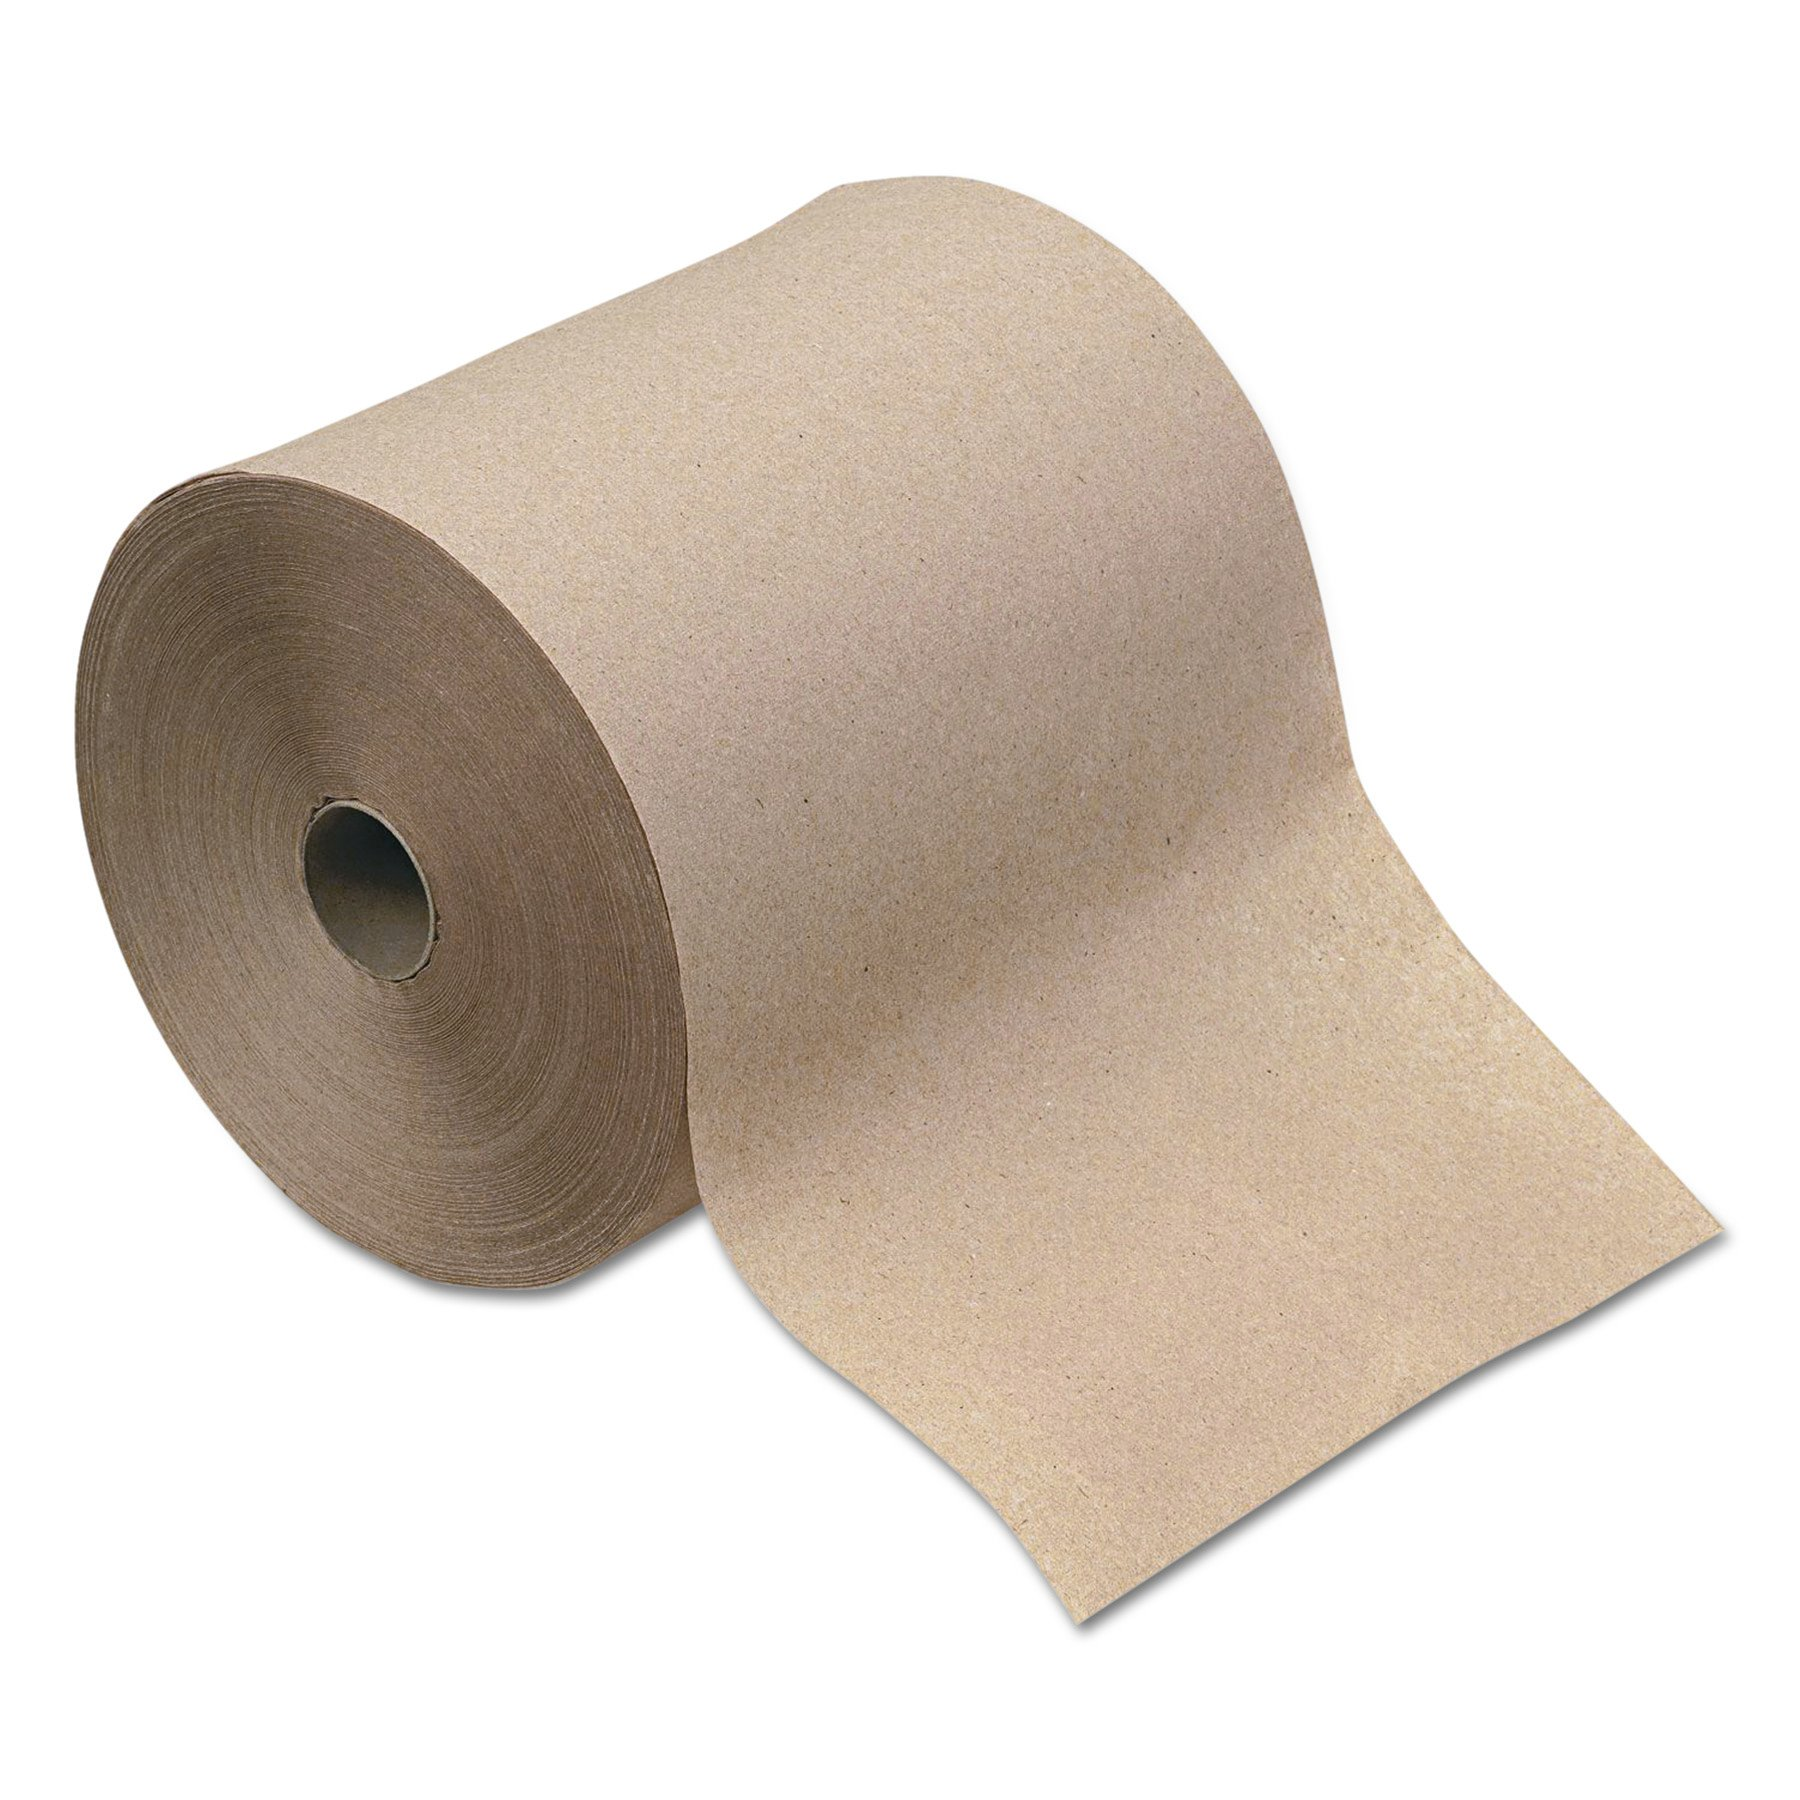 GEN 1916 Hardwound Roll Towels, 1-Ply, Natural, 8'' x 600 ft (Case of 12)